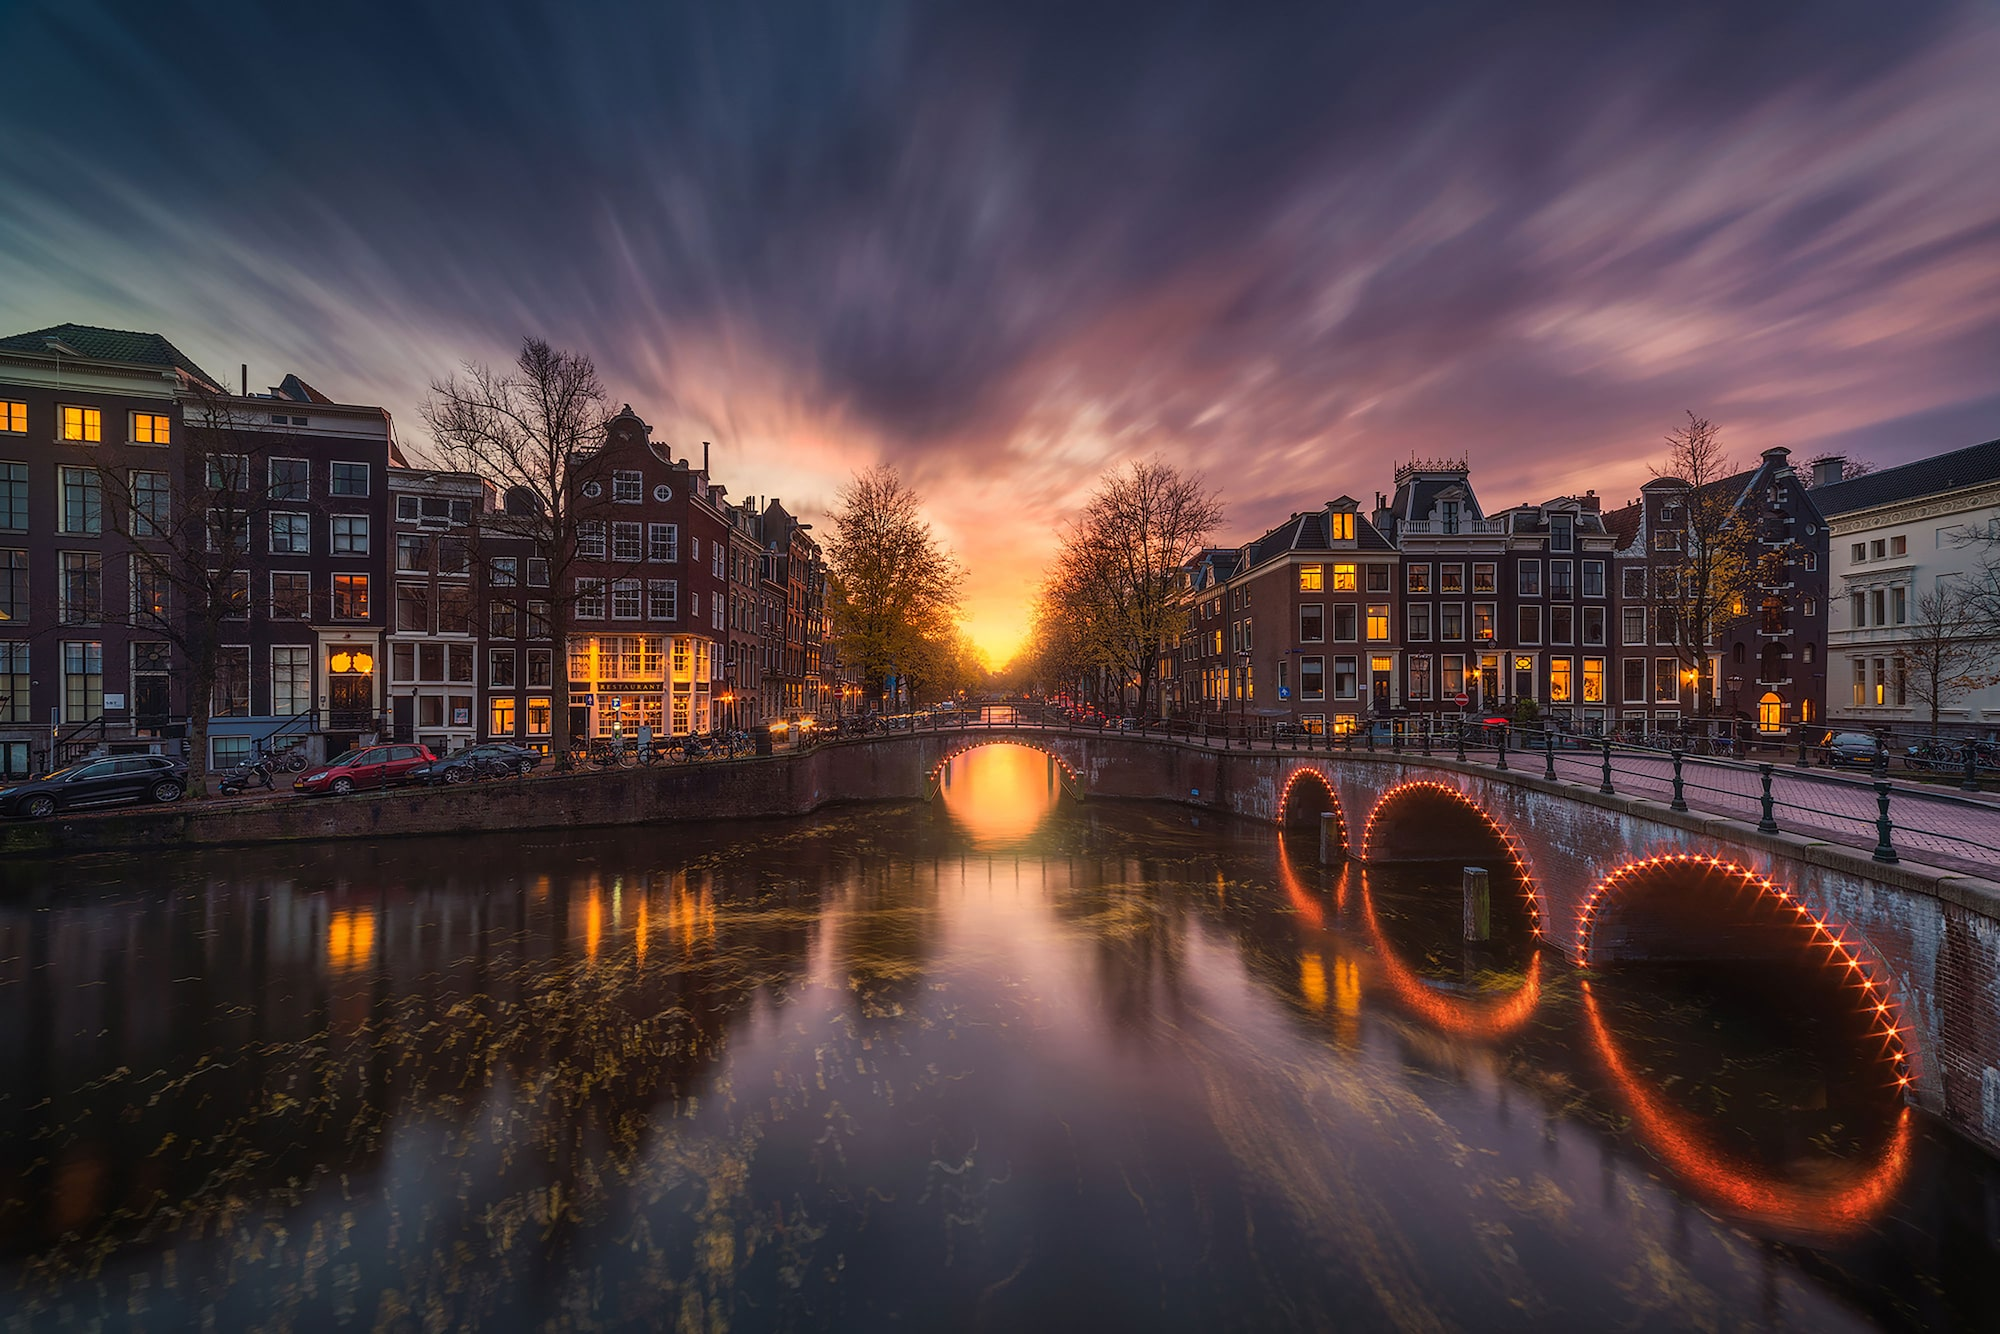 Albert-Dros-Sony-Alpha-7RII-amsterdam-canal-at-night-long-exposure